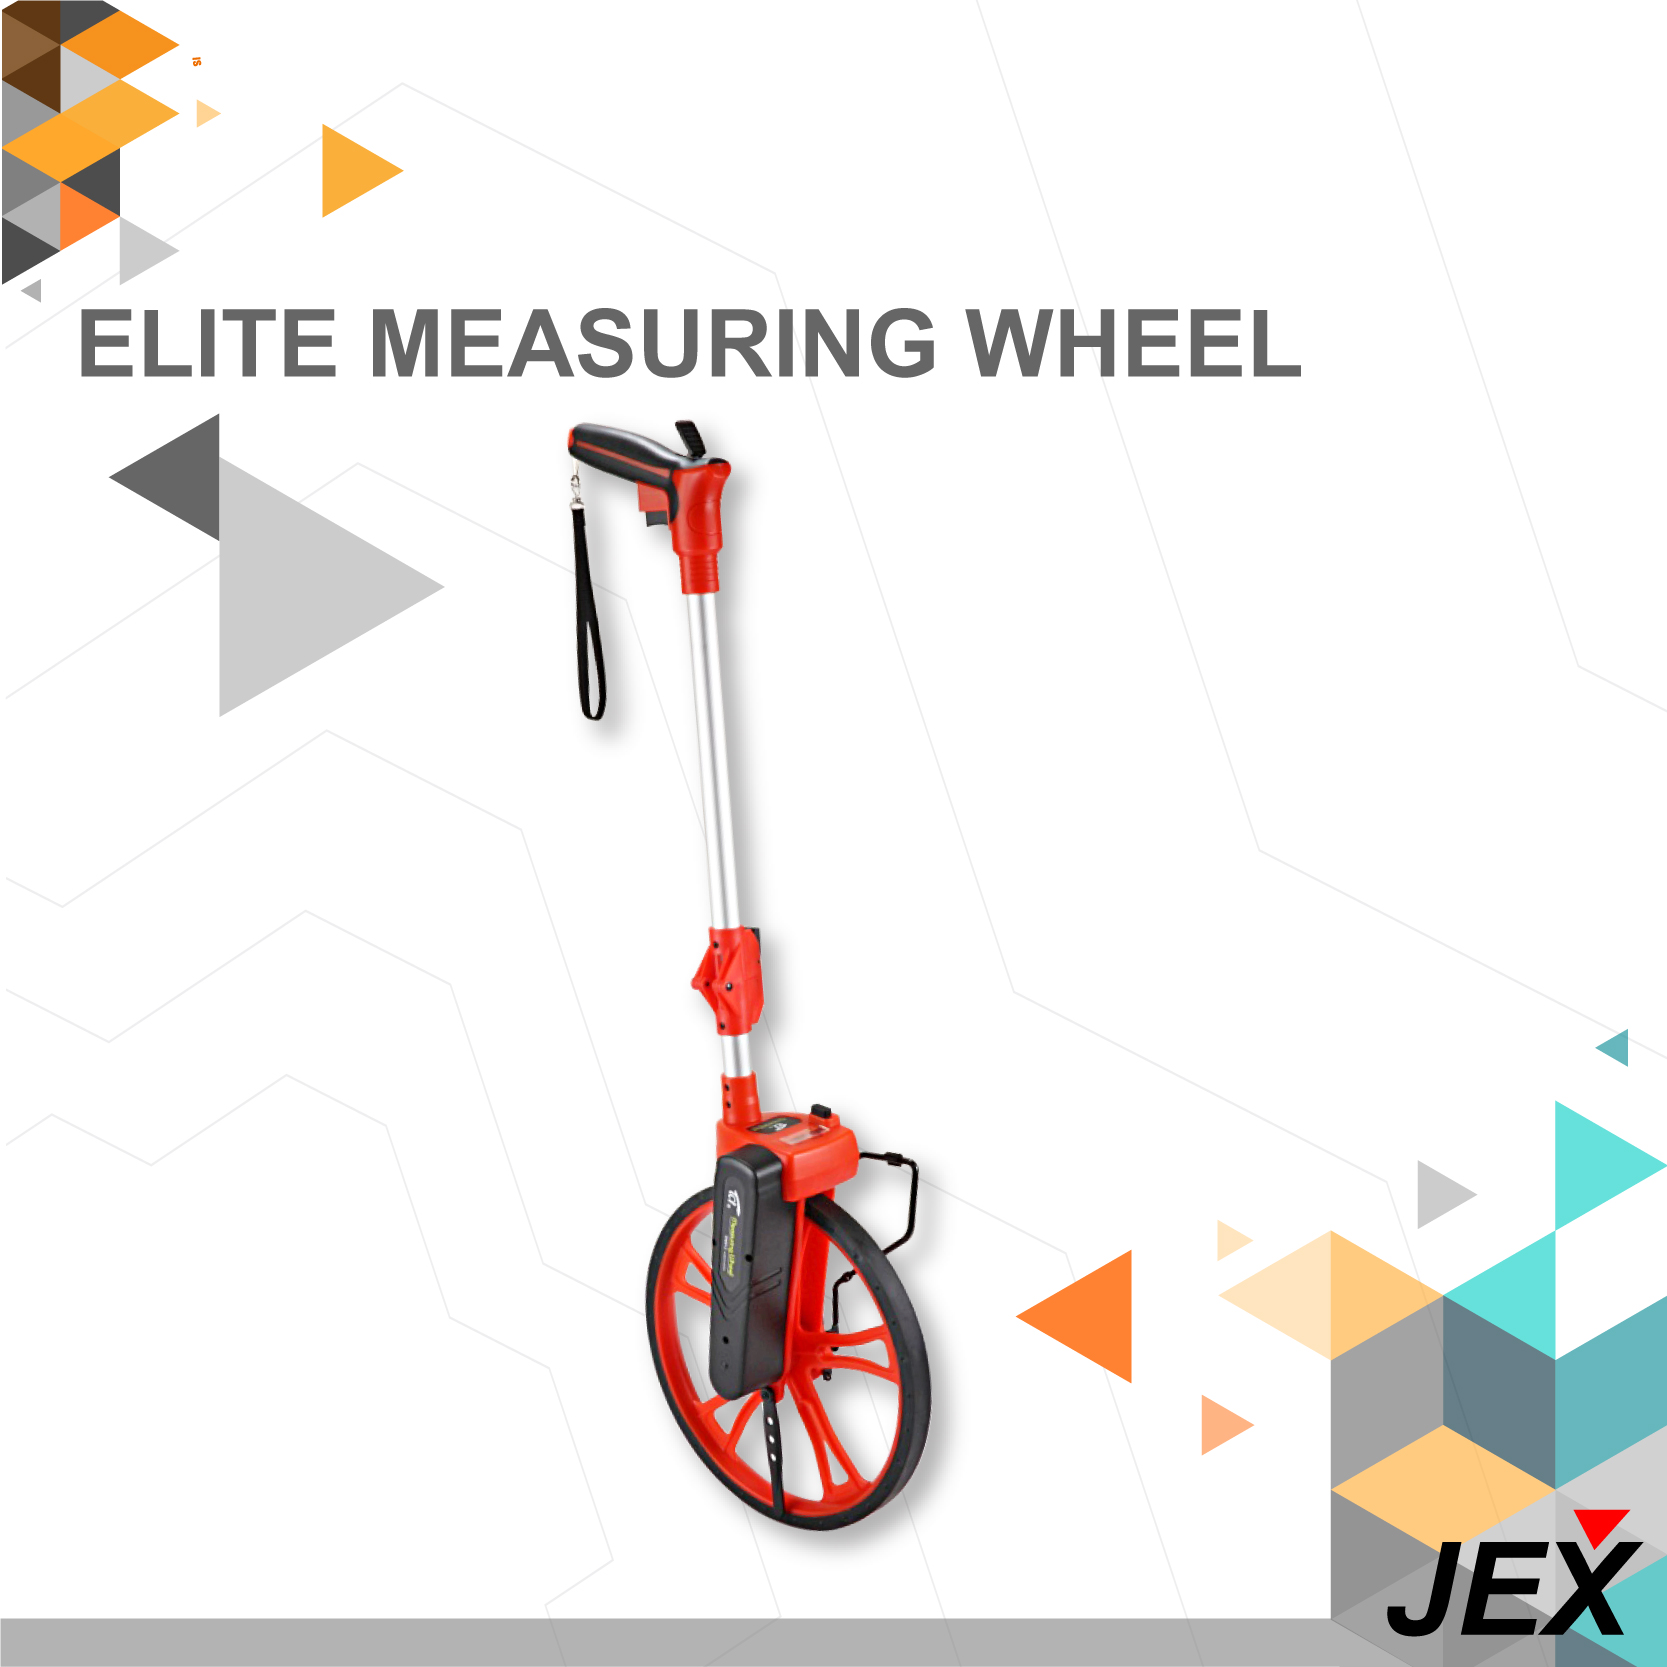 ELITE MEASURING WHEEL